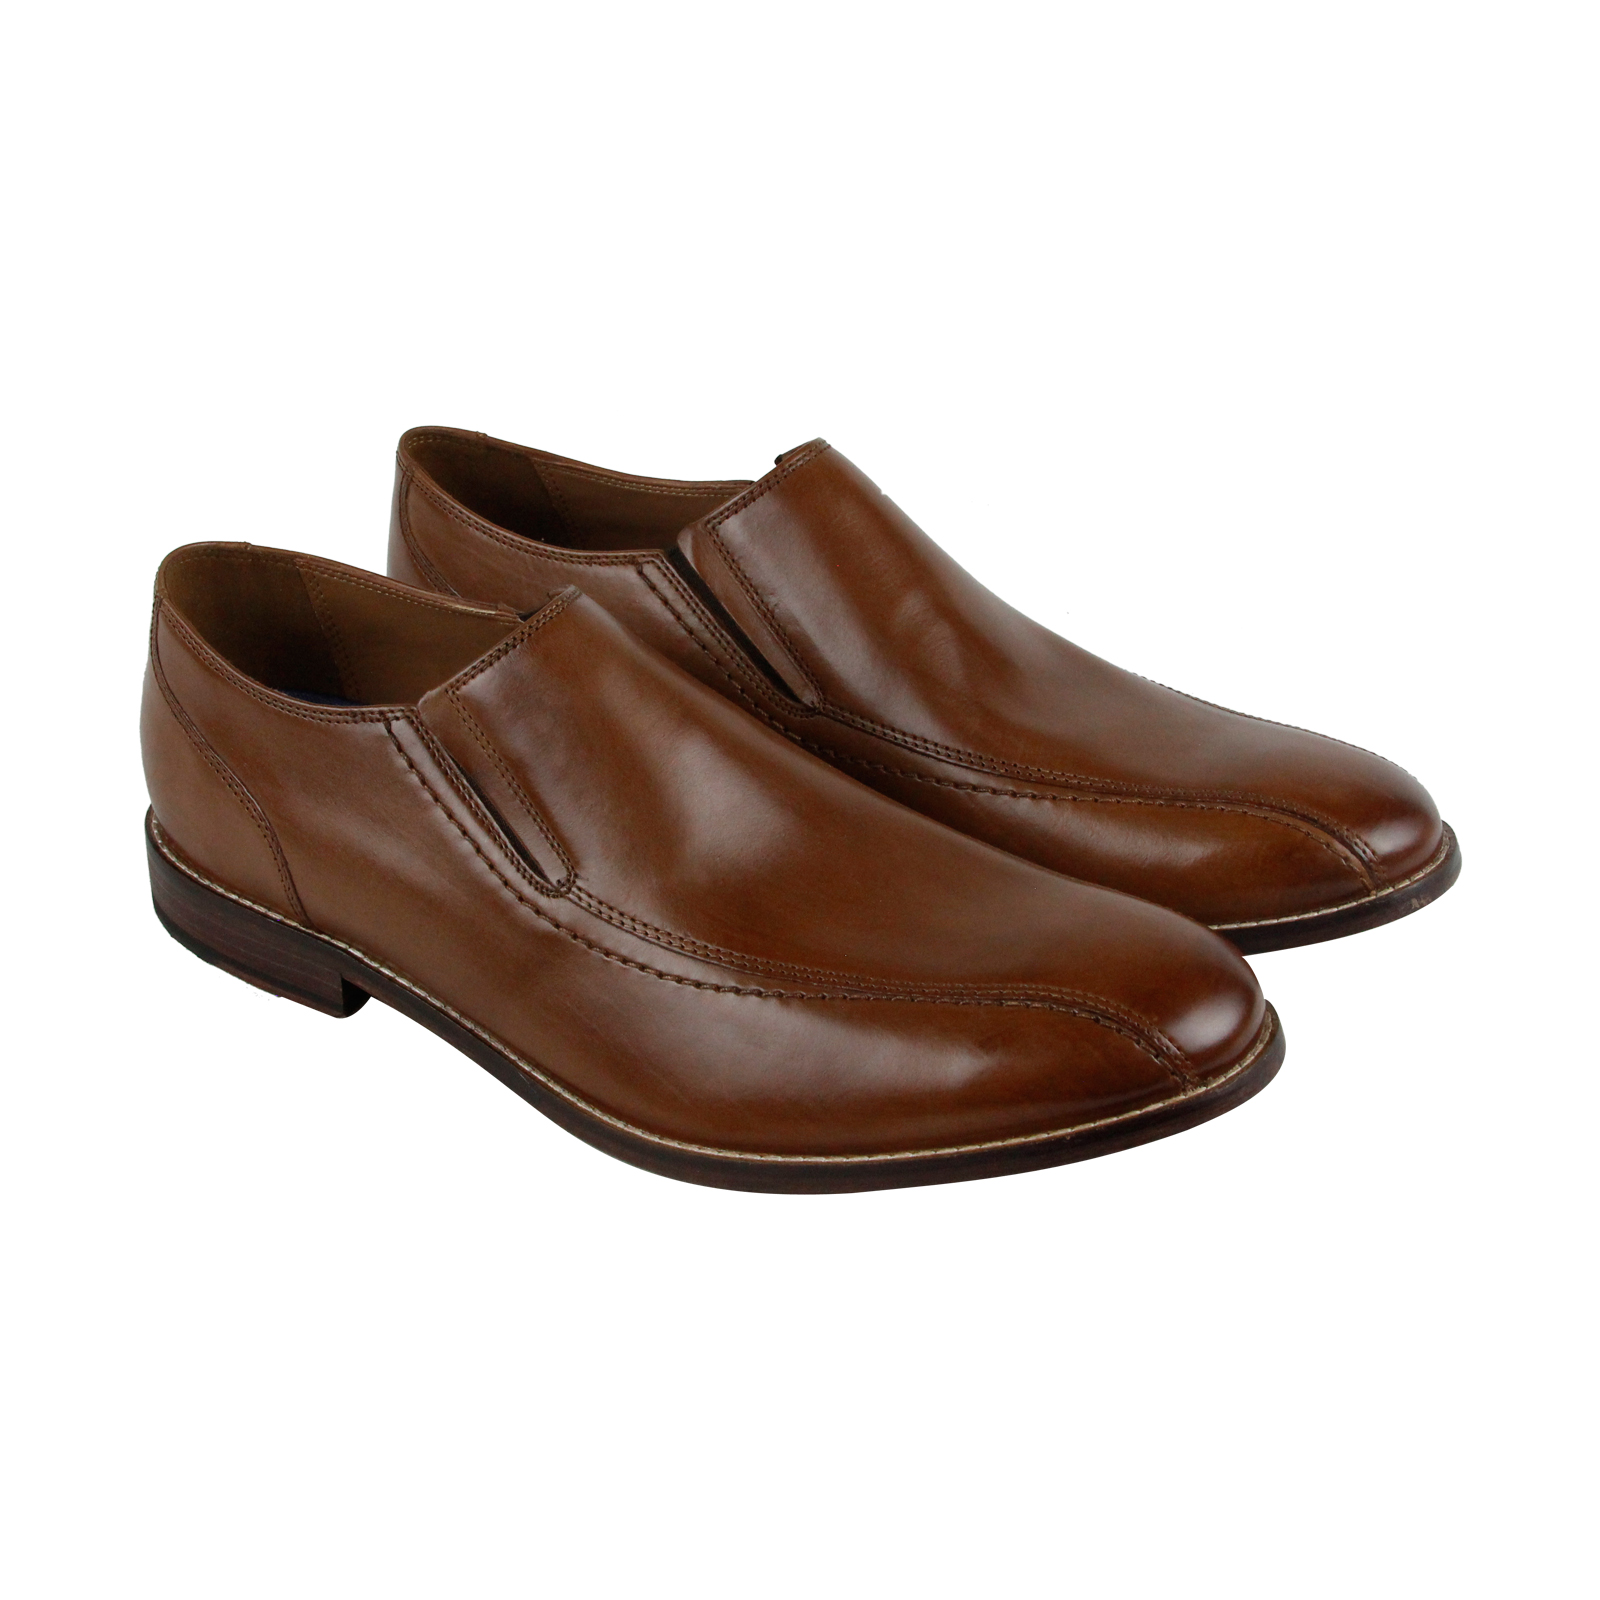 Clarks Ensboro Step Mens Tan Leather Casual Dress Slip On Loafers Shoes